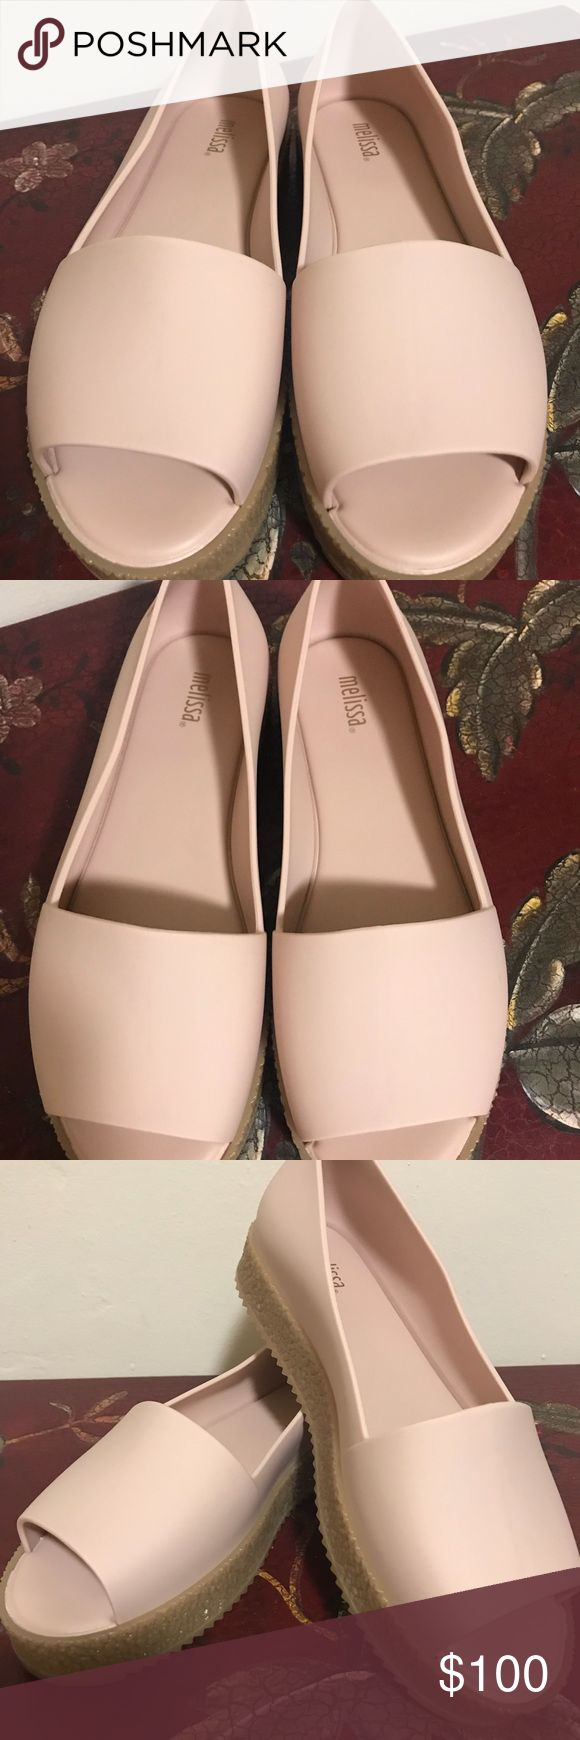 Melissa Melissa shoes, brand new with the shoe bag. I bought this when we visited Brazil. The shoes have their own fragrance that will last long. The Melissa brand is popular in Brazil because of the fragrances added to the shoes. Melissa Shoes Flats & Loafers